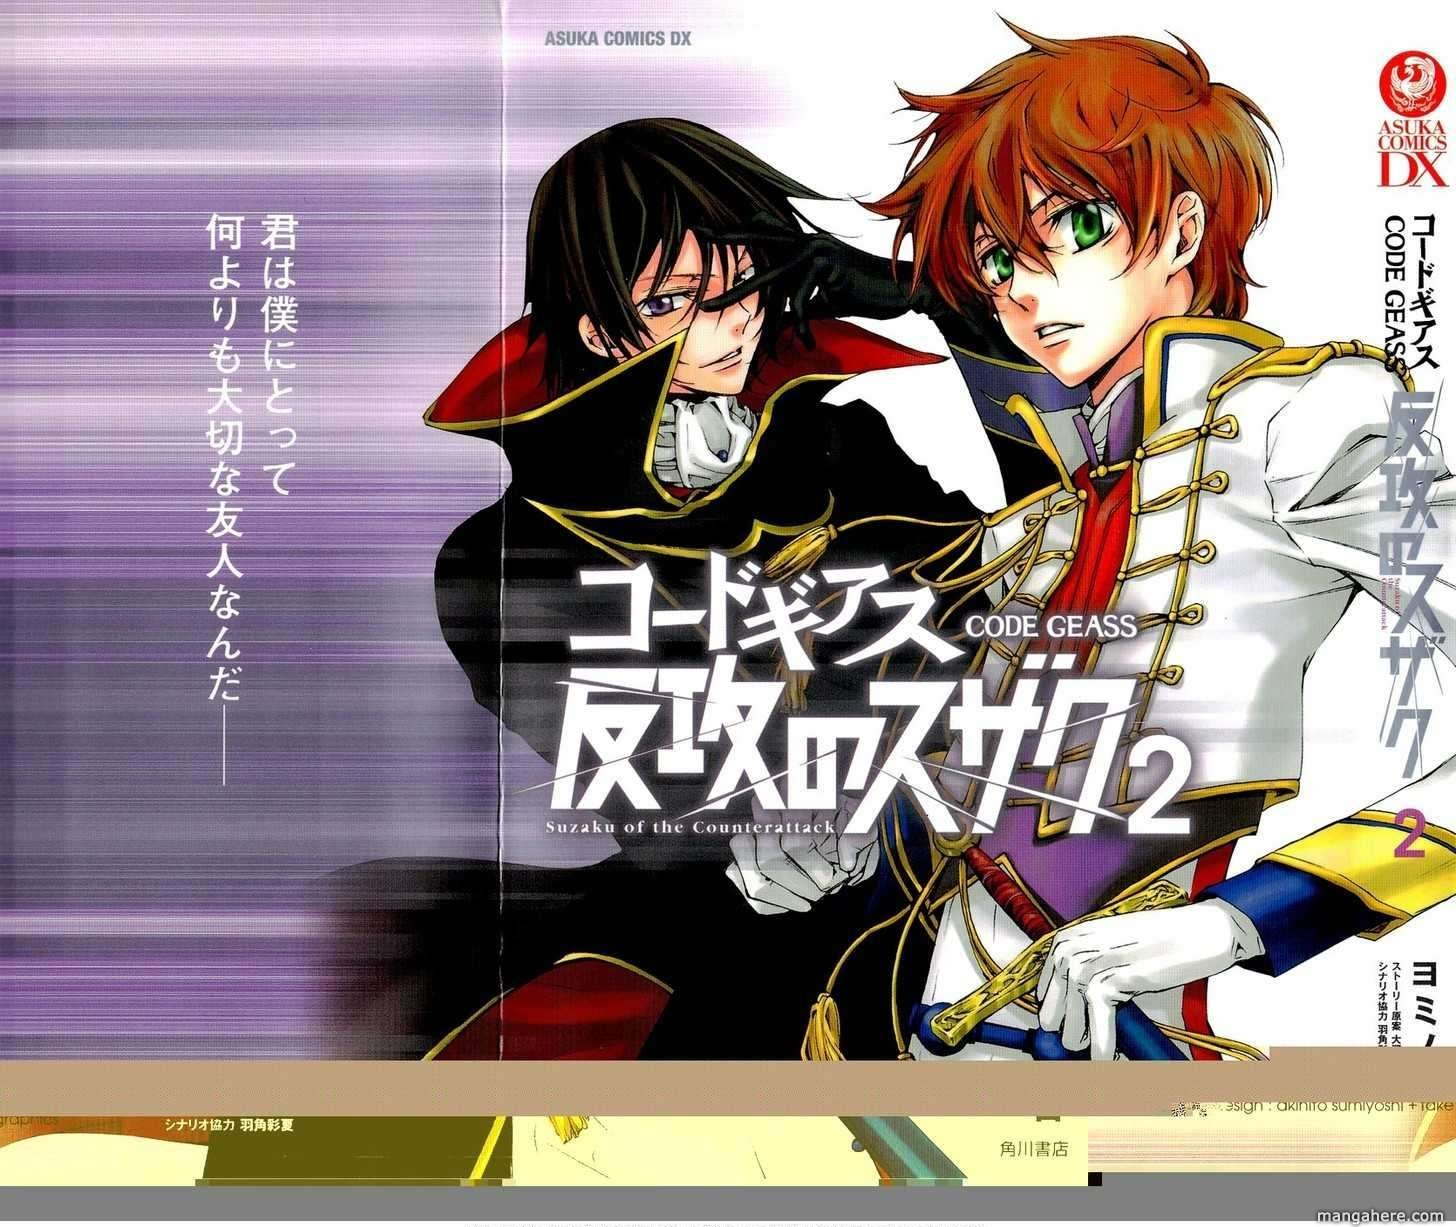 Code Geass: Suzaku of the Counterattack 4 Page 2